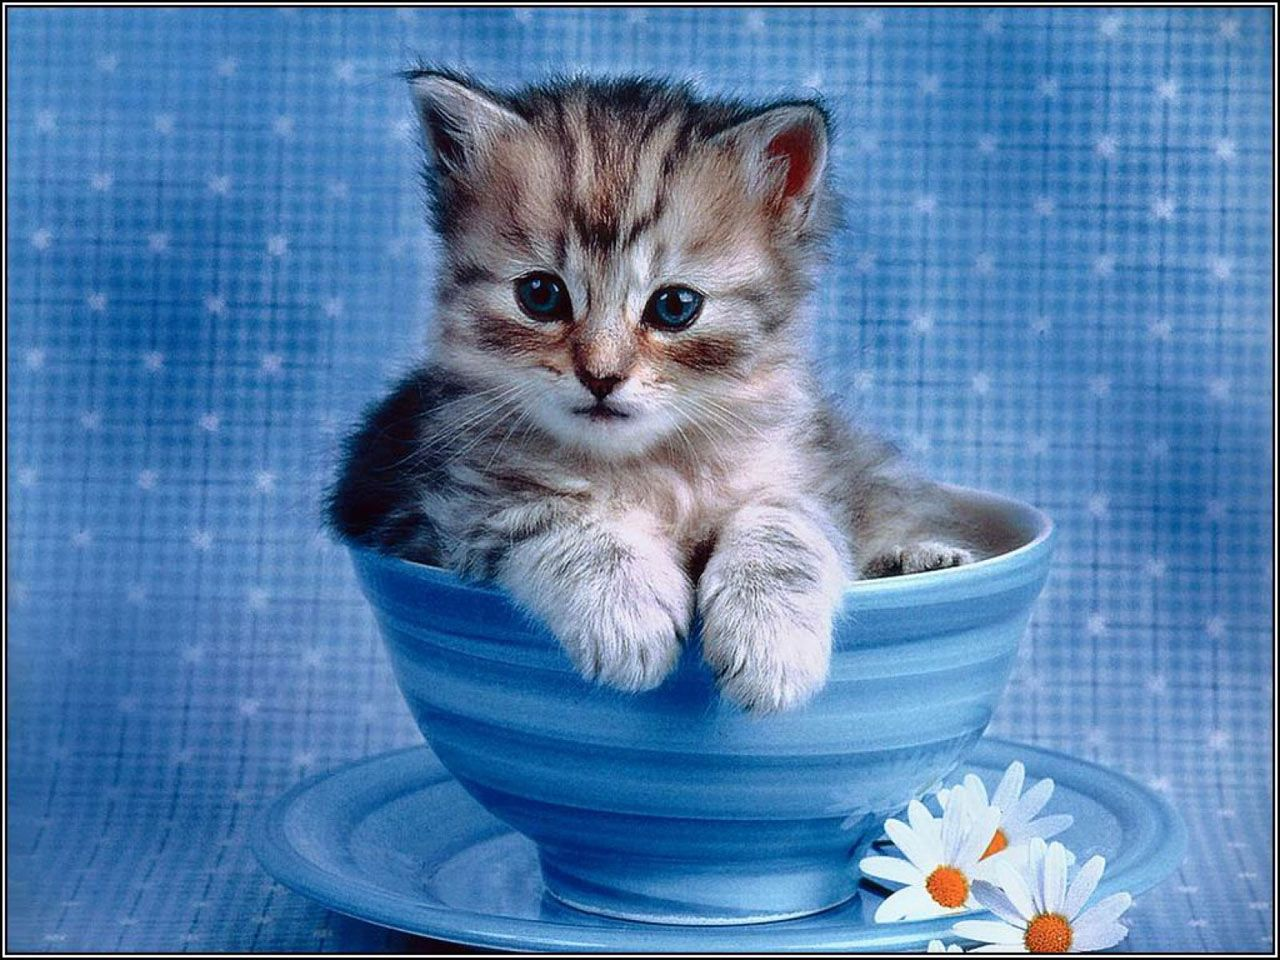 Cute Laptop Screensavers Free Impossibly Cute Kitten Cats Wallpaper Computer Desktop Kitten Wallpaper Kittens Cutest Cute Cat Wallpaper